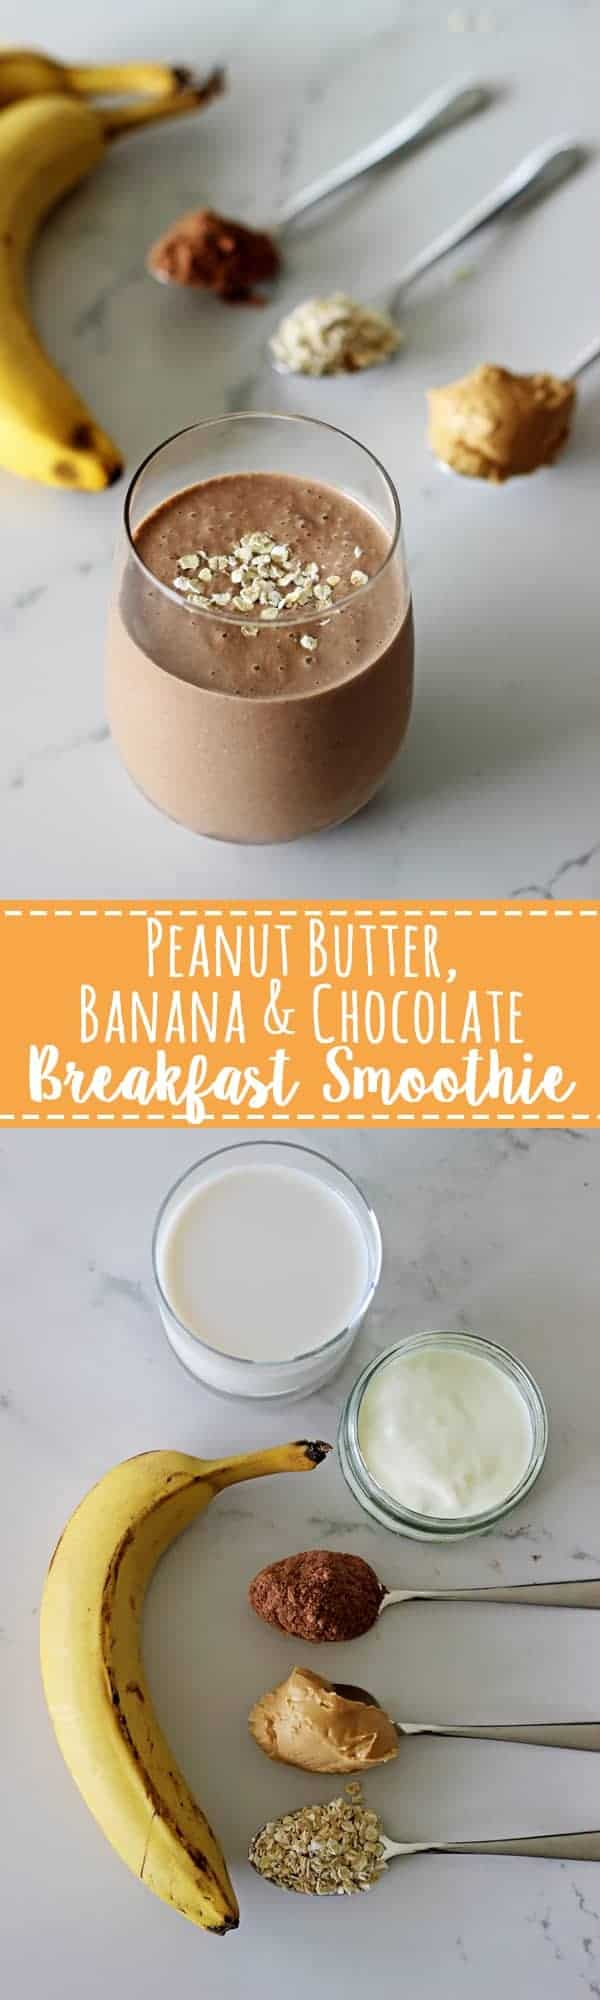 Peanut butter banana and chocolate breakfast smoothie! Creamy and delicious but totally healthy! The perfect breakfast, snack or guilt free dessert!   thekiwicountrygirl.com